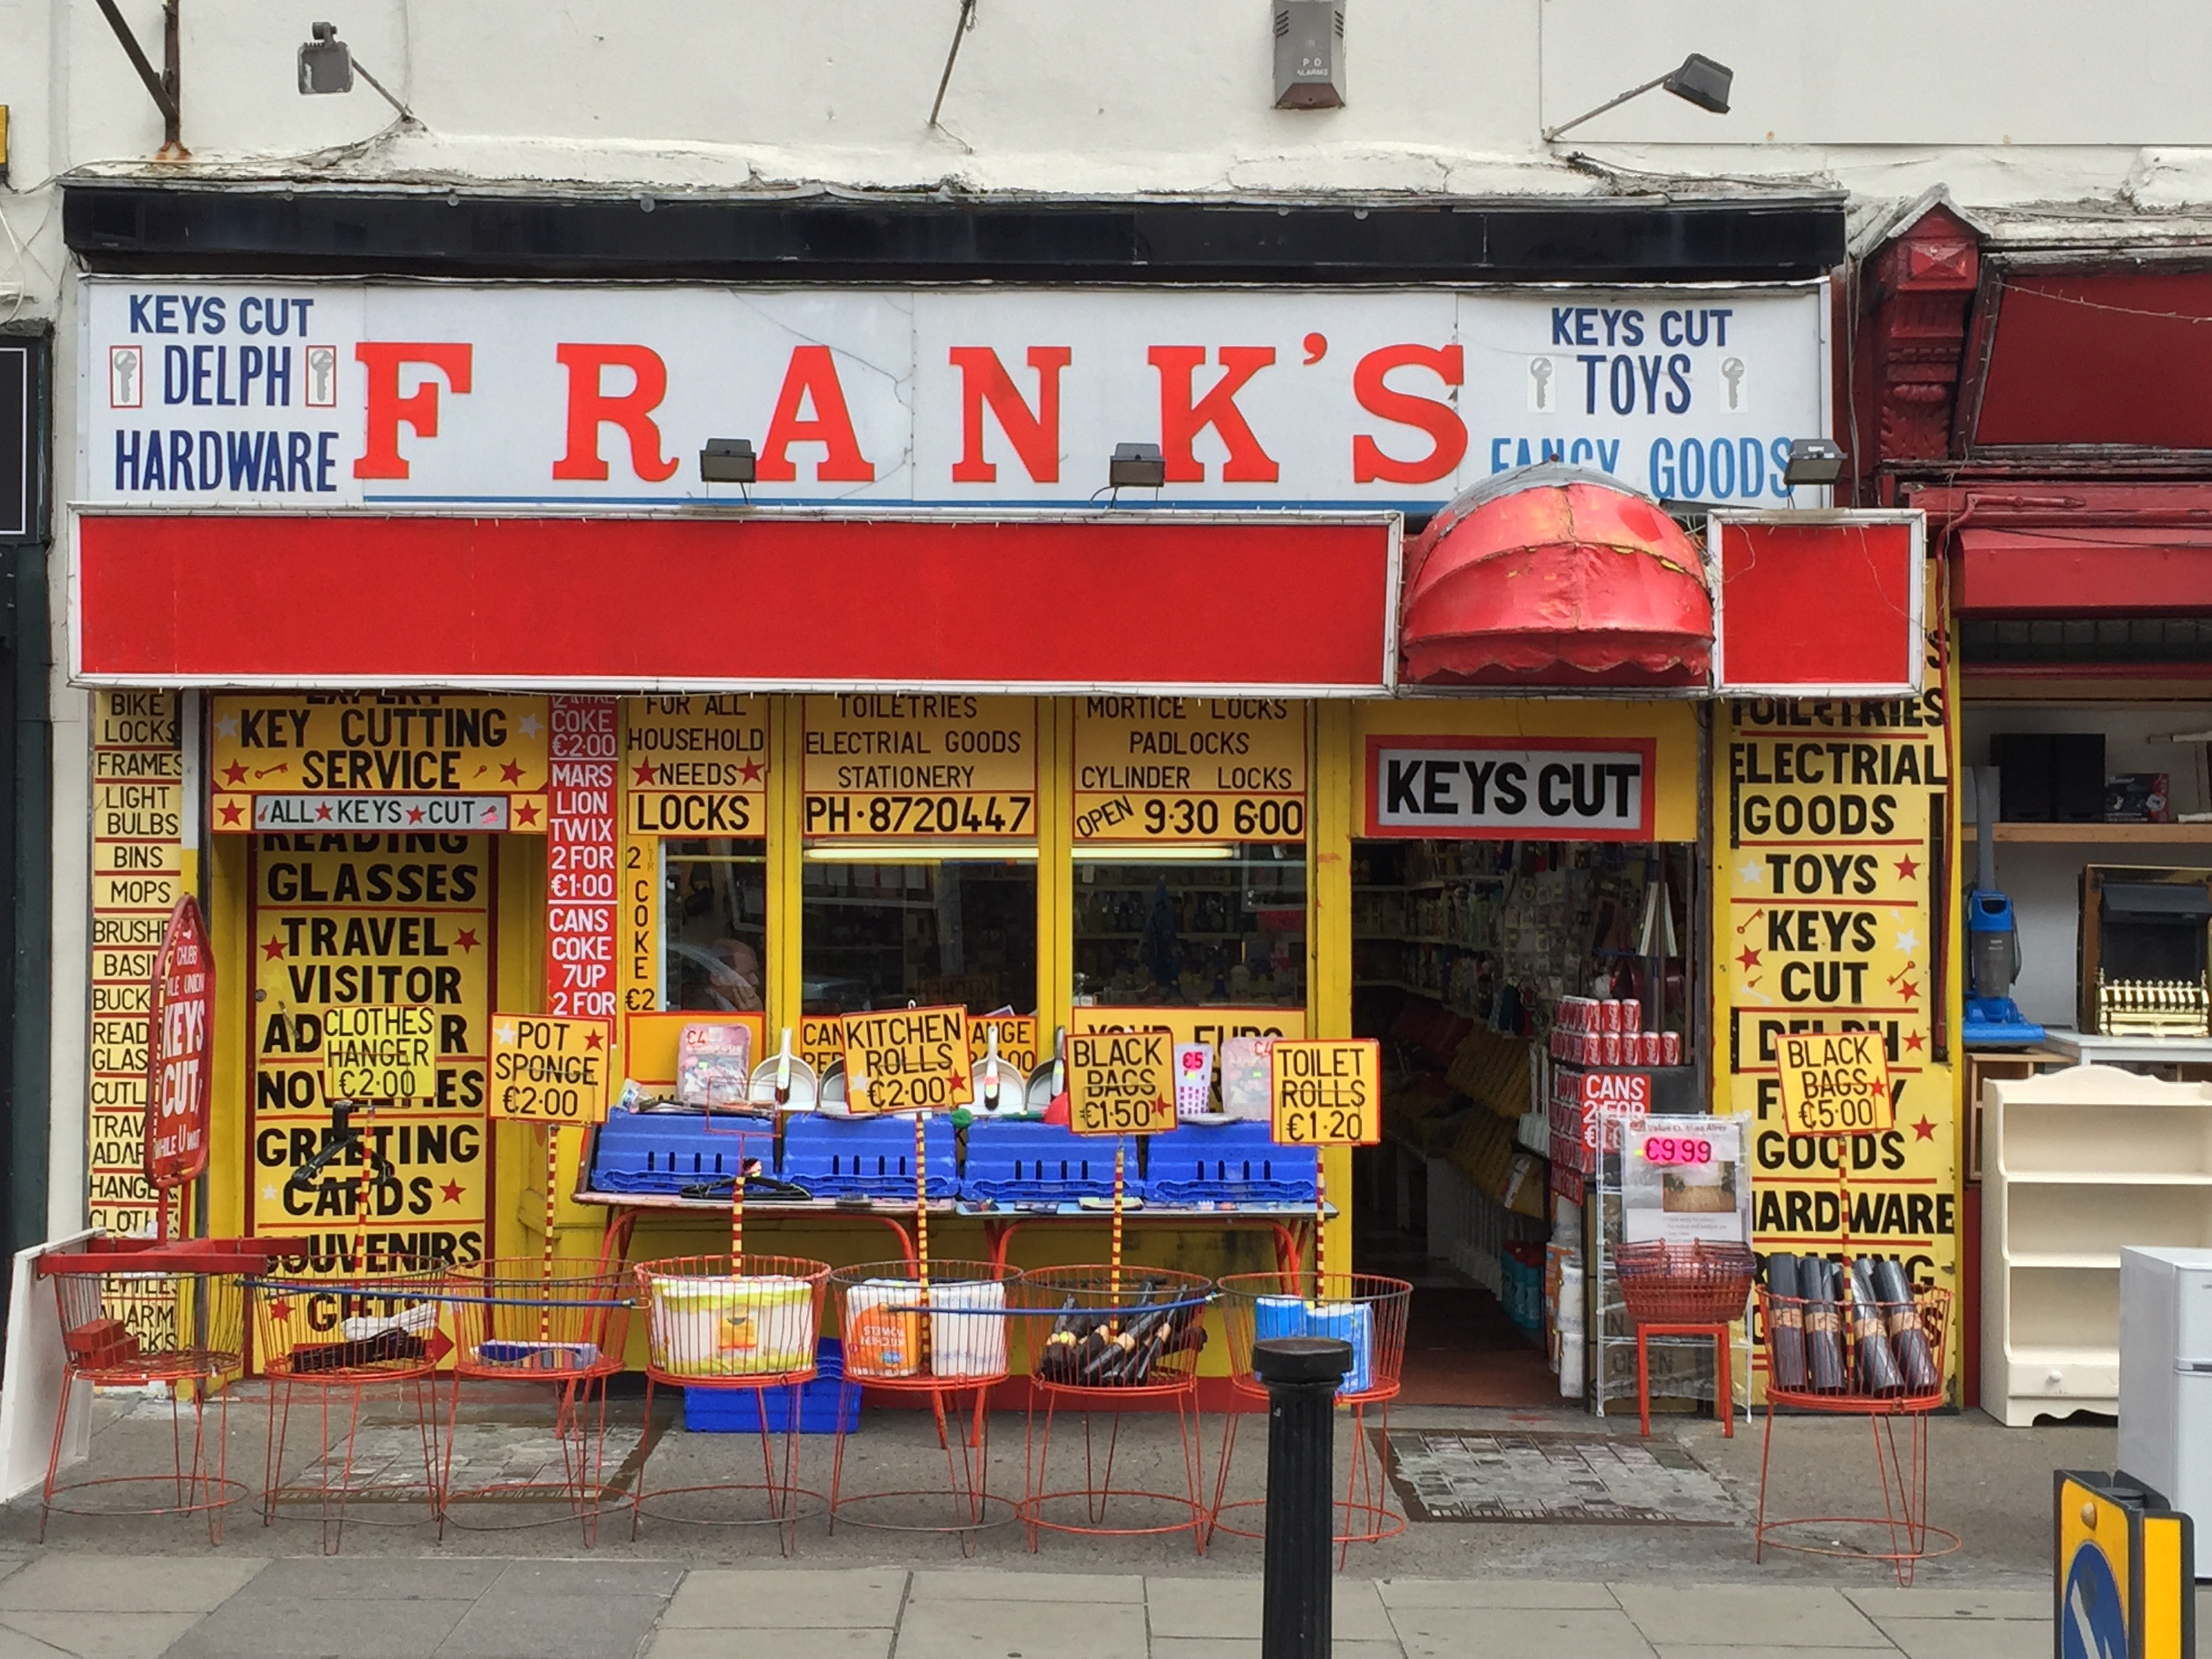 Frank's Fancy Goods, 18 Frederick Street in Dublin.